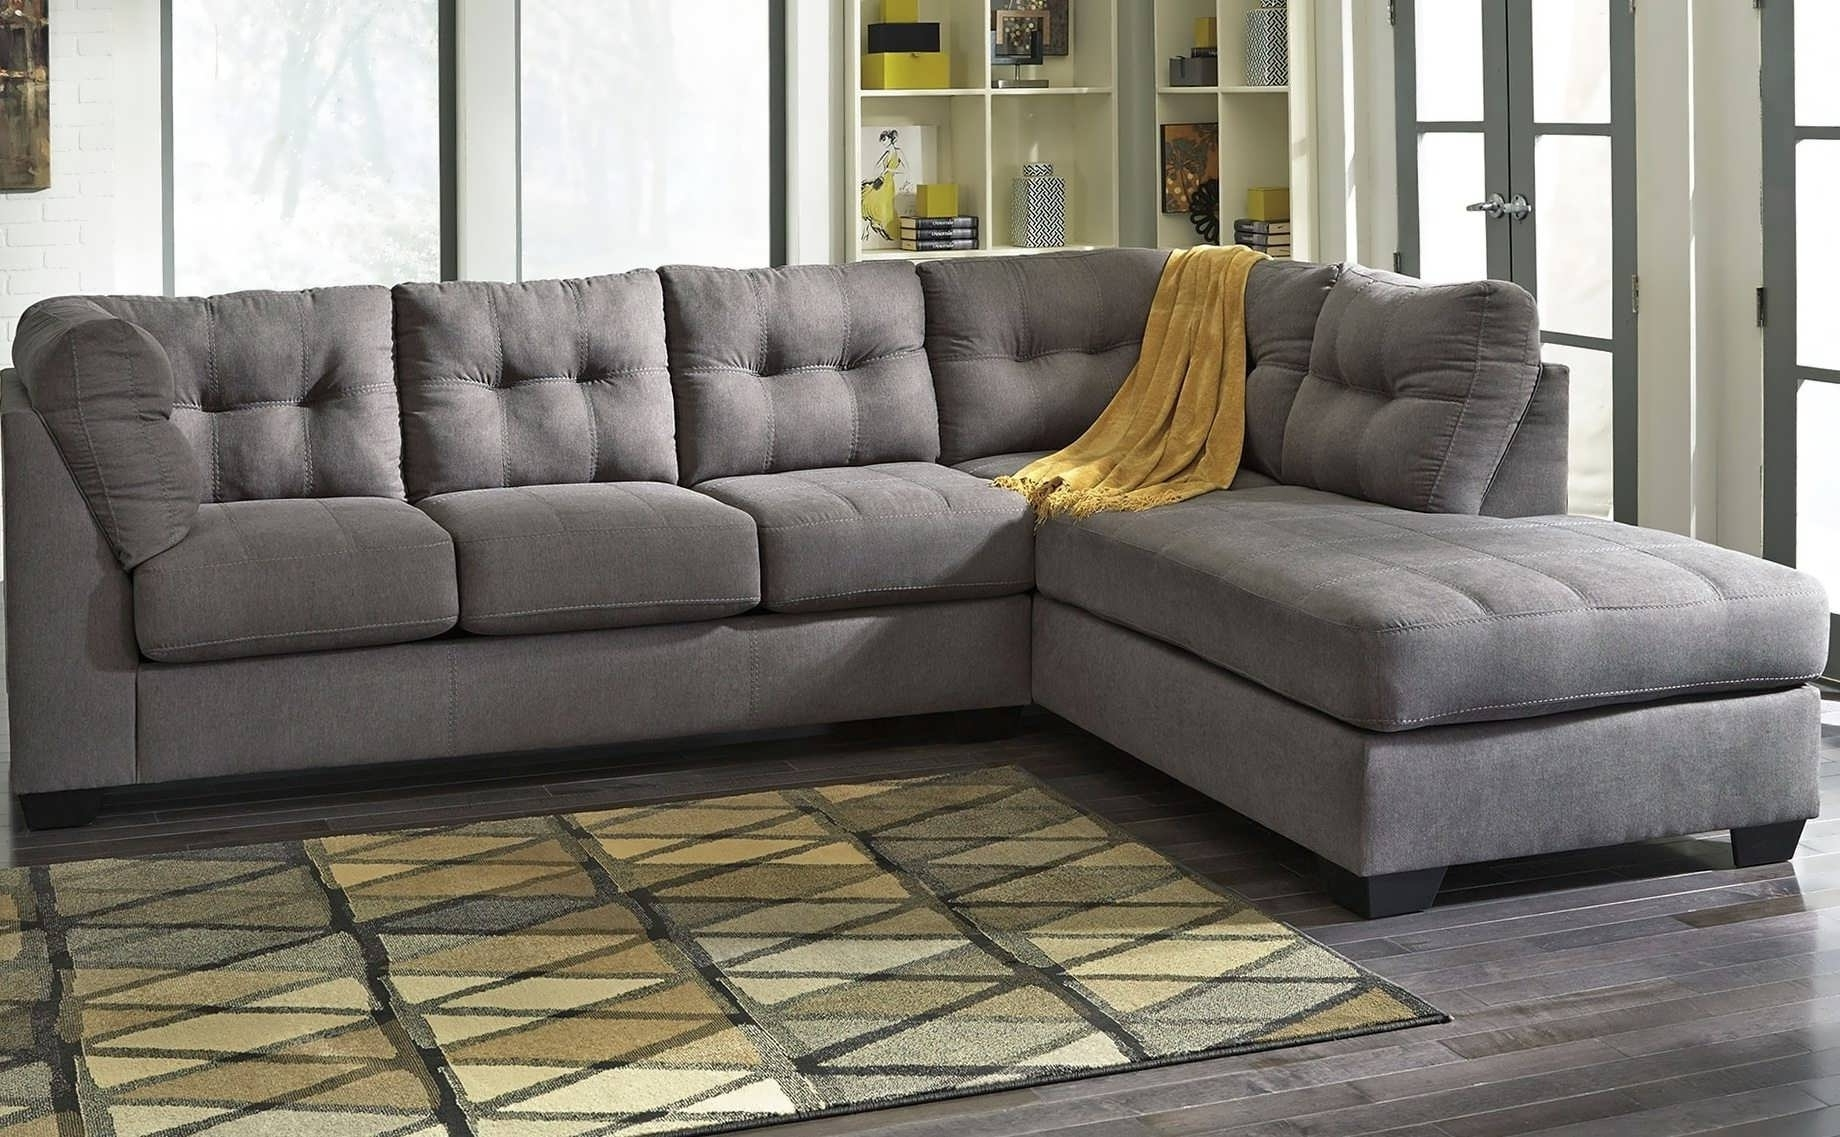 2018 Double Chaise Sectionals With Sofa : Contemporary Sectionals Double Chaise Sectional Sectional (View 1 of 15)